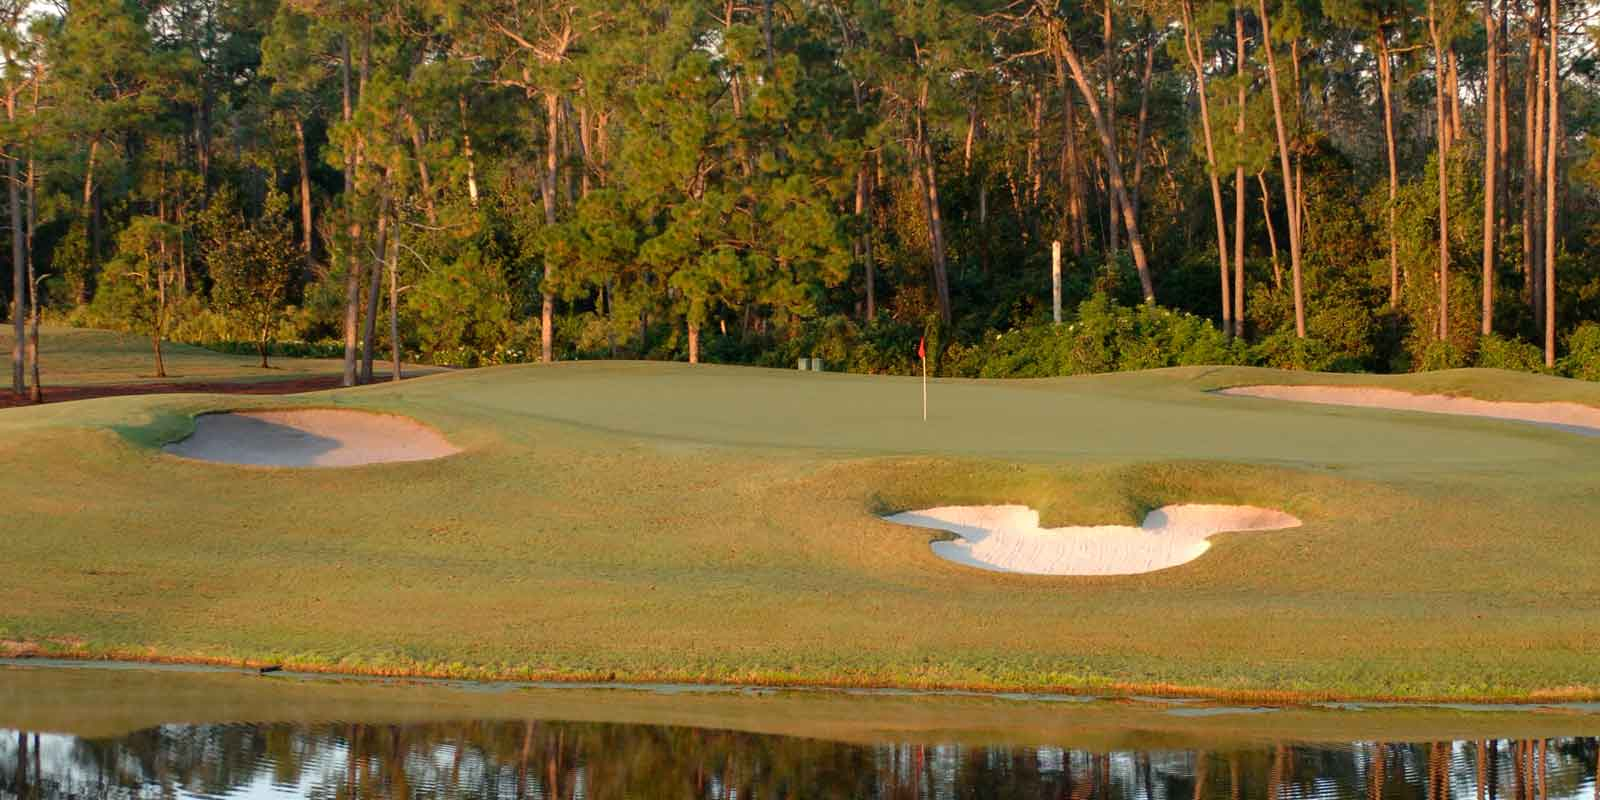 Landscape view of hole #6 at Magnolia Golf Course at Disney World, which features a Mickey Mouse shaped sand trap.